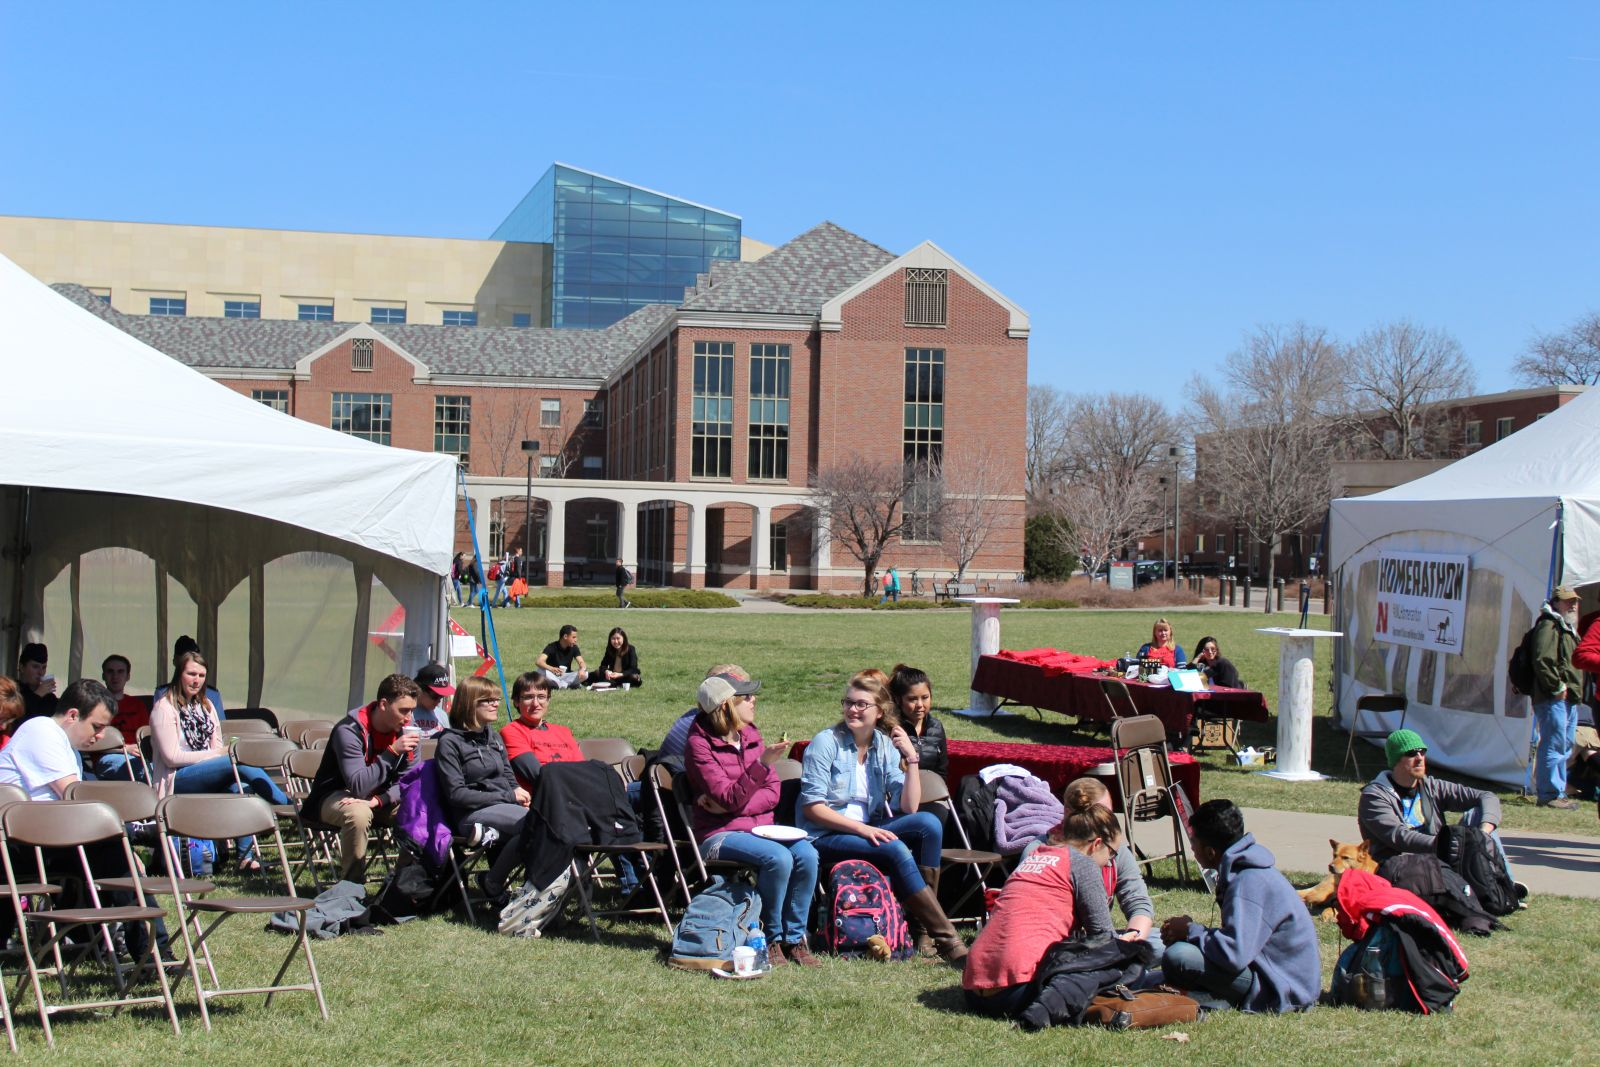 People lounging at midday. Photo by Ellie Churchill and used by permission.